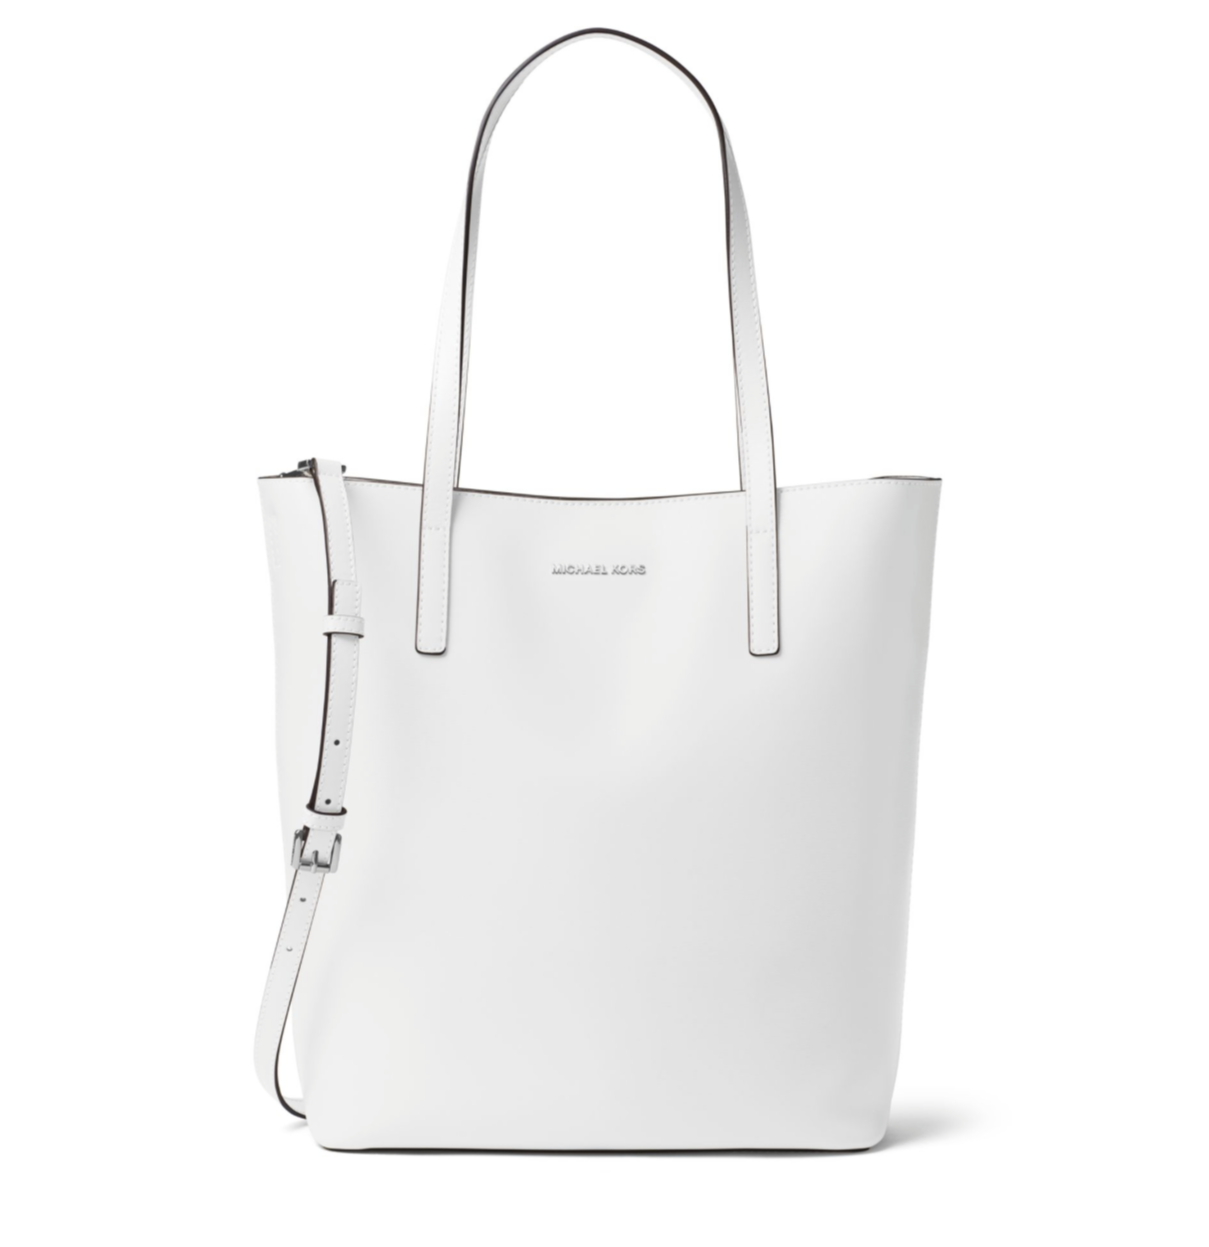 Michael Kors Emry Large Convertible Optic White Leather Tote Bag